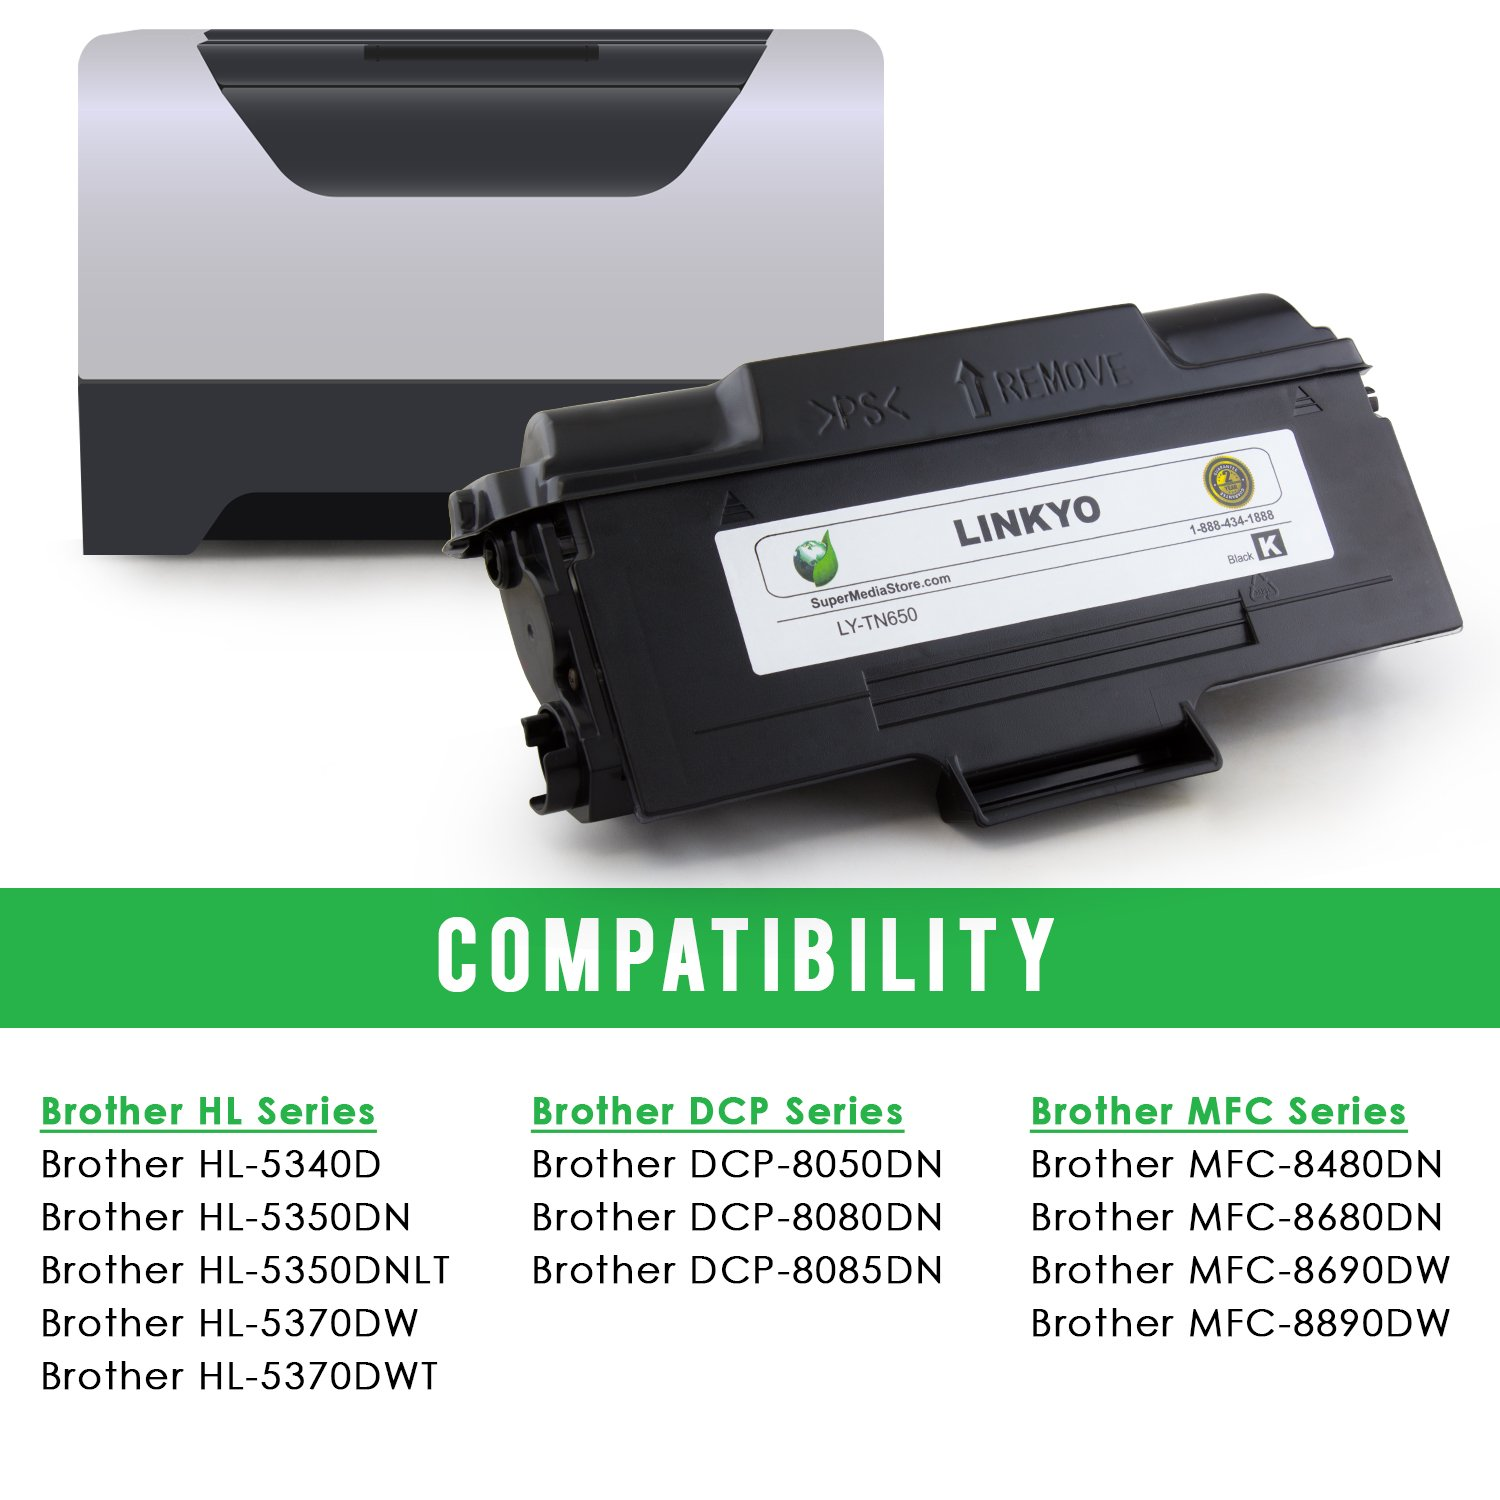 DRIVERS FOR BROTHER HL-5370DW UNIVERSAL PRINTER